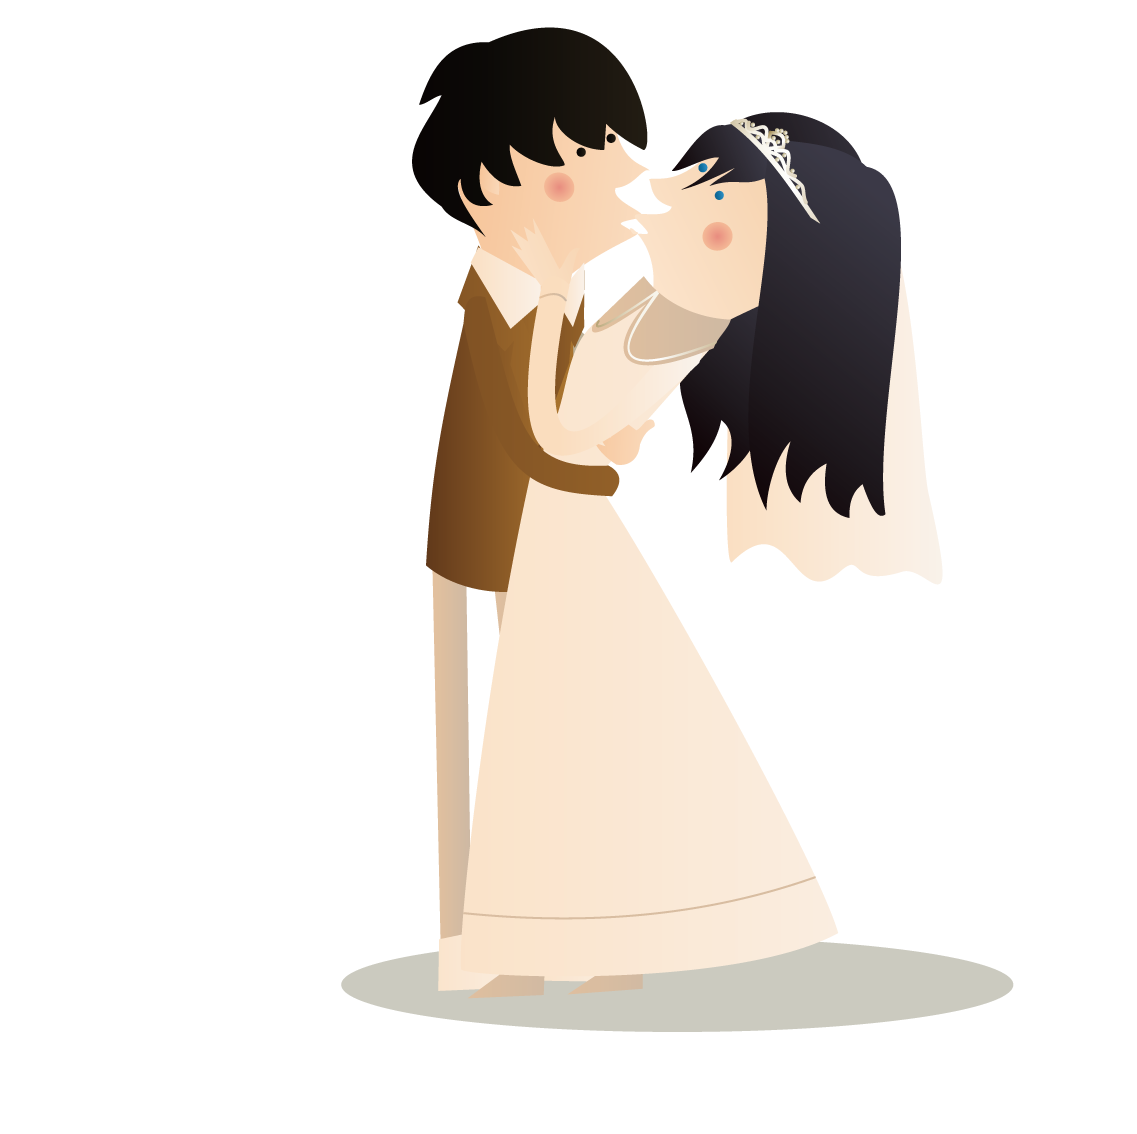 To kiss each other clipart clip art library stock Kiss couple Romance - Couple kissing each other png download ... clip art library stock